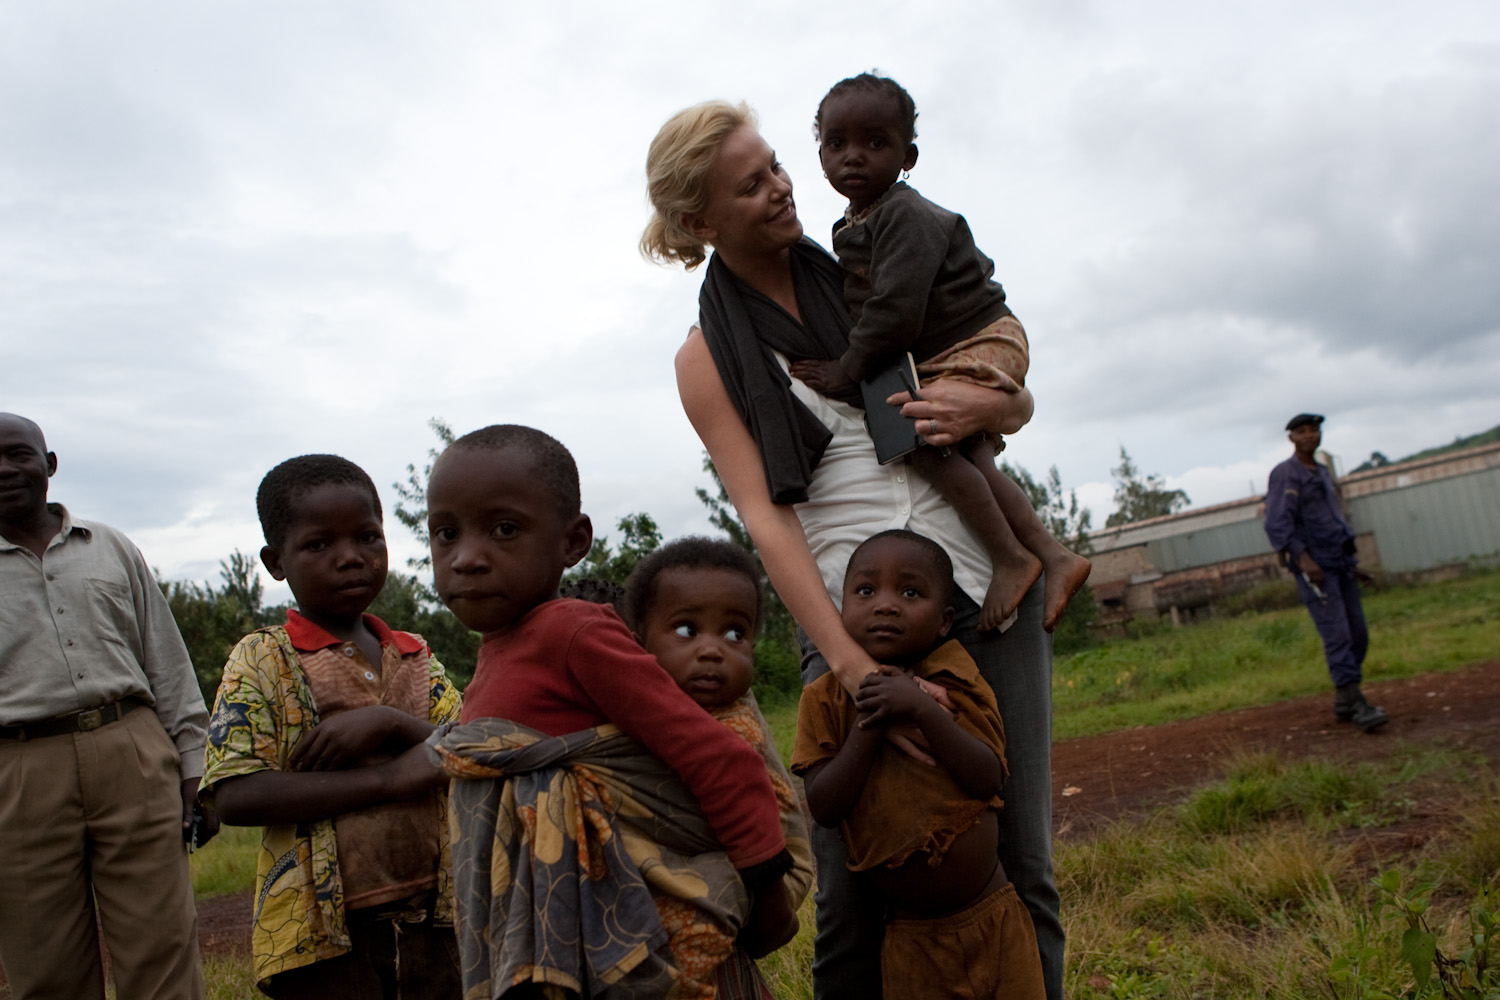 charlize theron africa outreach project Browse charlize theron africa outreach project - arrivals latest photos view images and find out more about charlize theron africa outreach project - arrivals at.